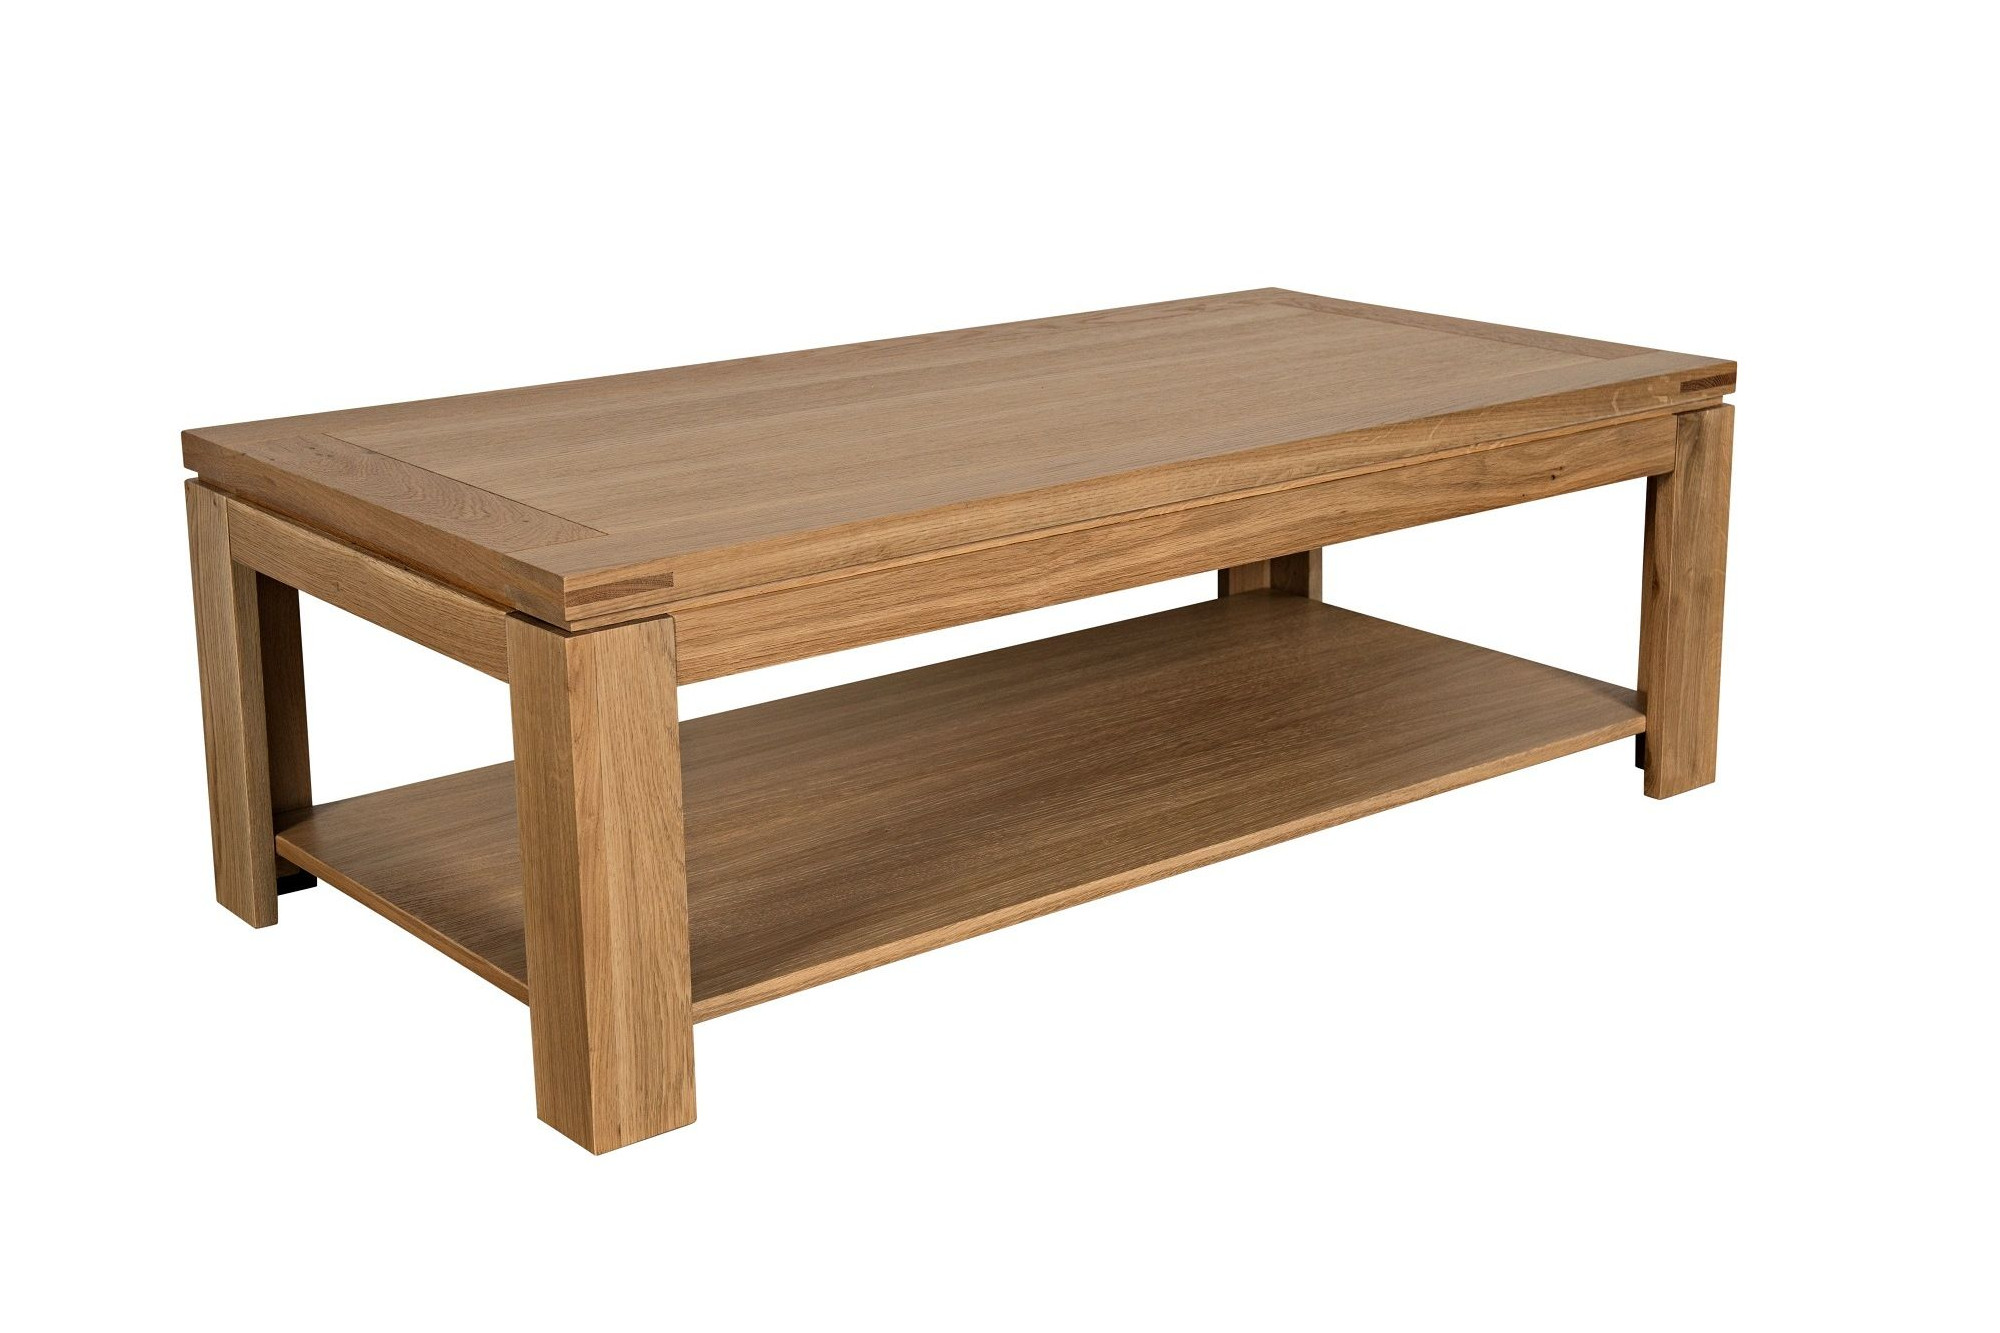 Table basse moderne en bois massif chene de france hellin - Table salon moderne ...